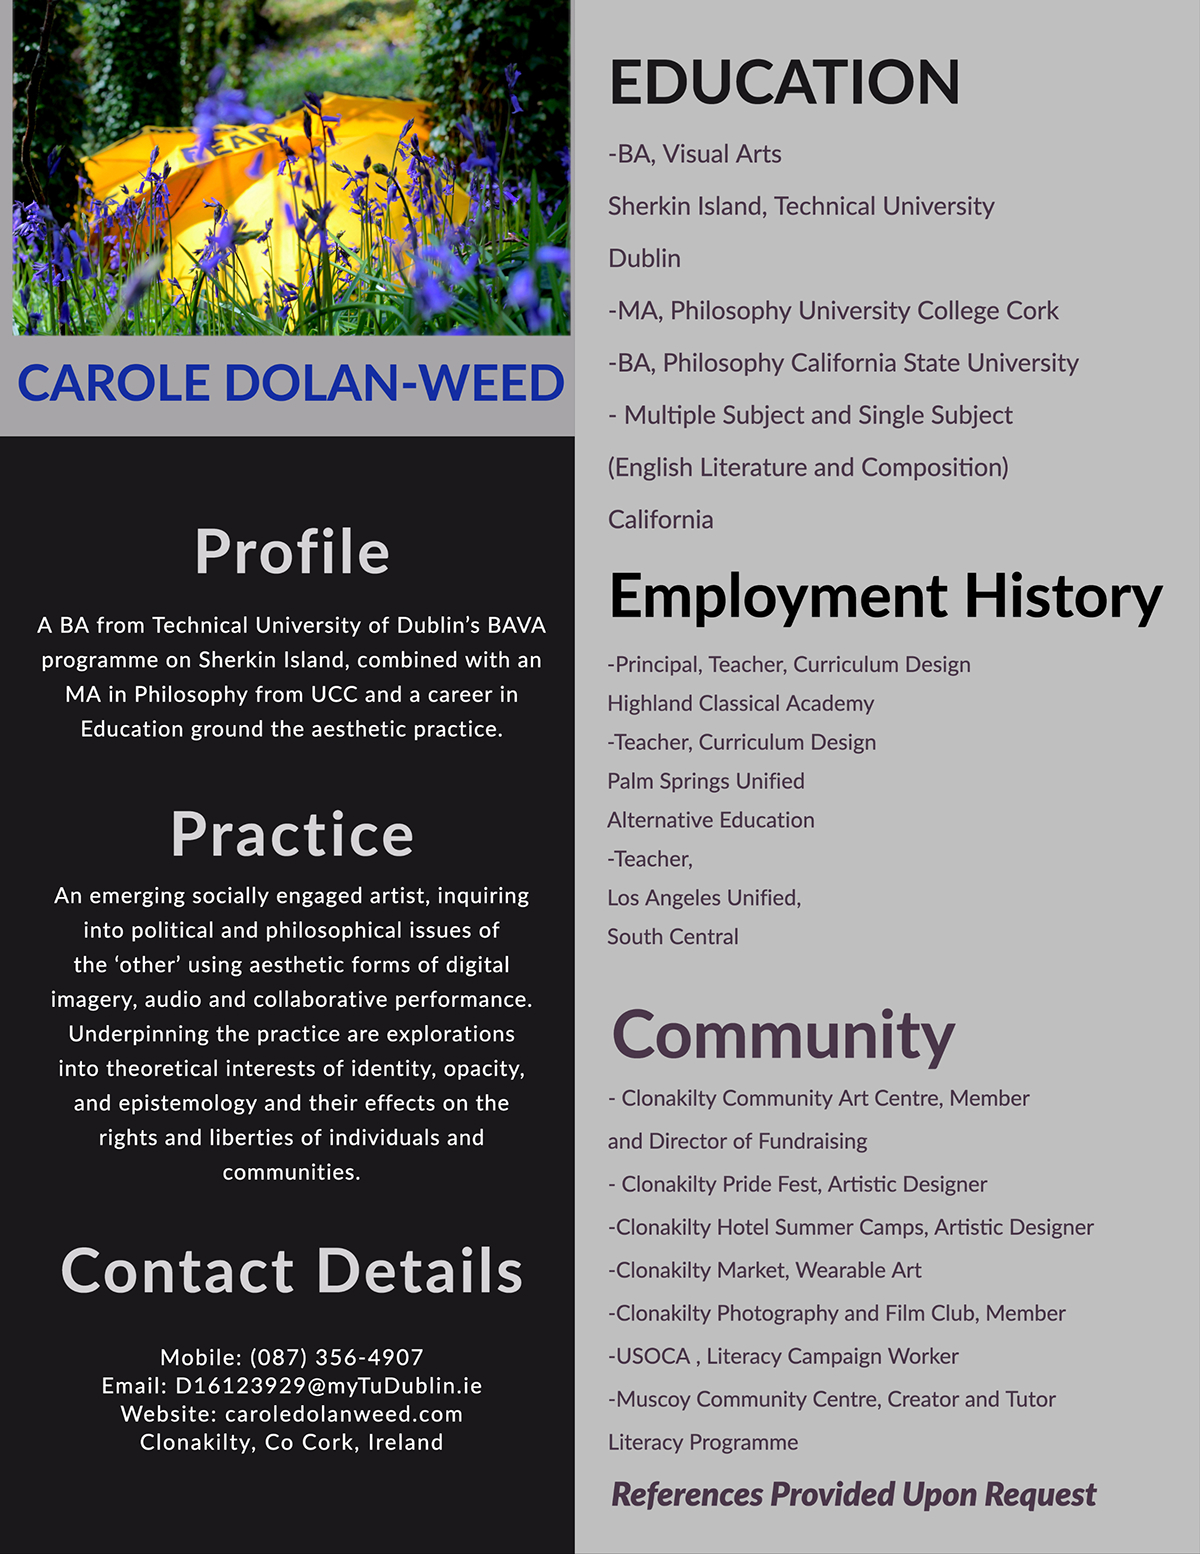 Education Education Community Practice Employment History Contact Details Carole Dolan-Weed Profile References Provided Upon Request -BA, Visual Arts Sherkin Island, Technical University Dublin -MA, Philosophy University College Cork -BA, Philosophy California State University - Multiple Subject and Single Subject (English Literature and Composition) California Mobile: (087) 356-4907 Email: D16123929@myTuDublin.ie Website: caroledolanweed.com Clonakilty, Co Cork, Ireland A BA from Technical University of Dublin's BAVA programme on Sherkin Island, combined with an MA in Philosophy from UCC and a career in Education ground the aesthetic practice. - Clonakilty Community Art Centre, Member and Director of Fundraising - Clonakilty Pride Fest, Artistic Designer -Clonakilty Hotel Summer Camps, Artistic Designer -Clonakilty Market, Wearable Art -Clonakilty Photography and Film Club, Member -USOCA , Literacy Campaign Worker -Muscoy Community Centre, Creator and Tutor Literacy Programme An emerging socially engaged artist, inquiring into political and philosophical issues of the 'other' using aesthetic forms of digital imagery, audio and collaborative performance. Underpinning the practice are explorations into theoretical interests of identity, opacity, and epistemology and their effects on the rights and liberties of individuals and communities. -Principal, Teacher, Curriculum Design Highland Classical Academy -Teacher, Curriculum Design Palm Springs Unified Alternative Education -Teacher, Los Angeles Unified, South Central